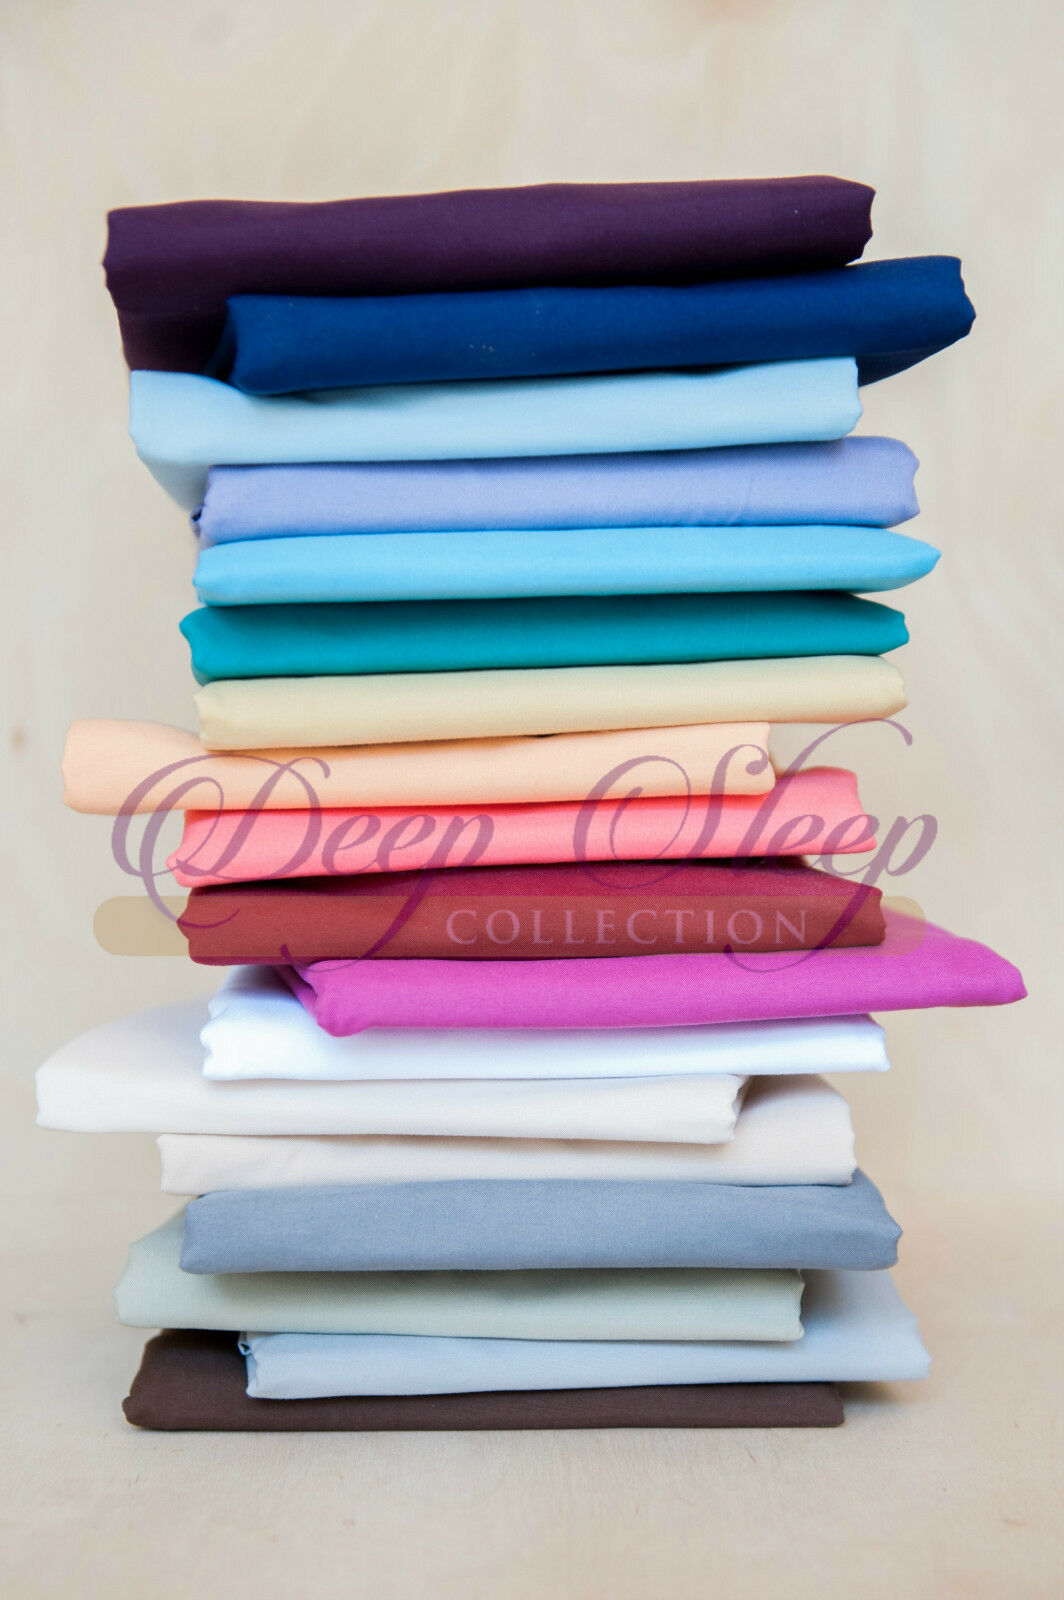 Deep Sleep 1800 Breathable Brushed Microfiber Sheets - Short Queen   RV Sheets